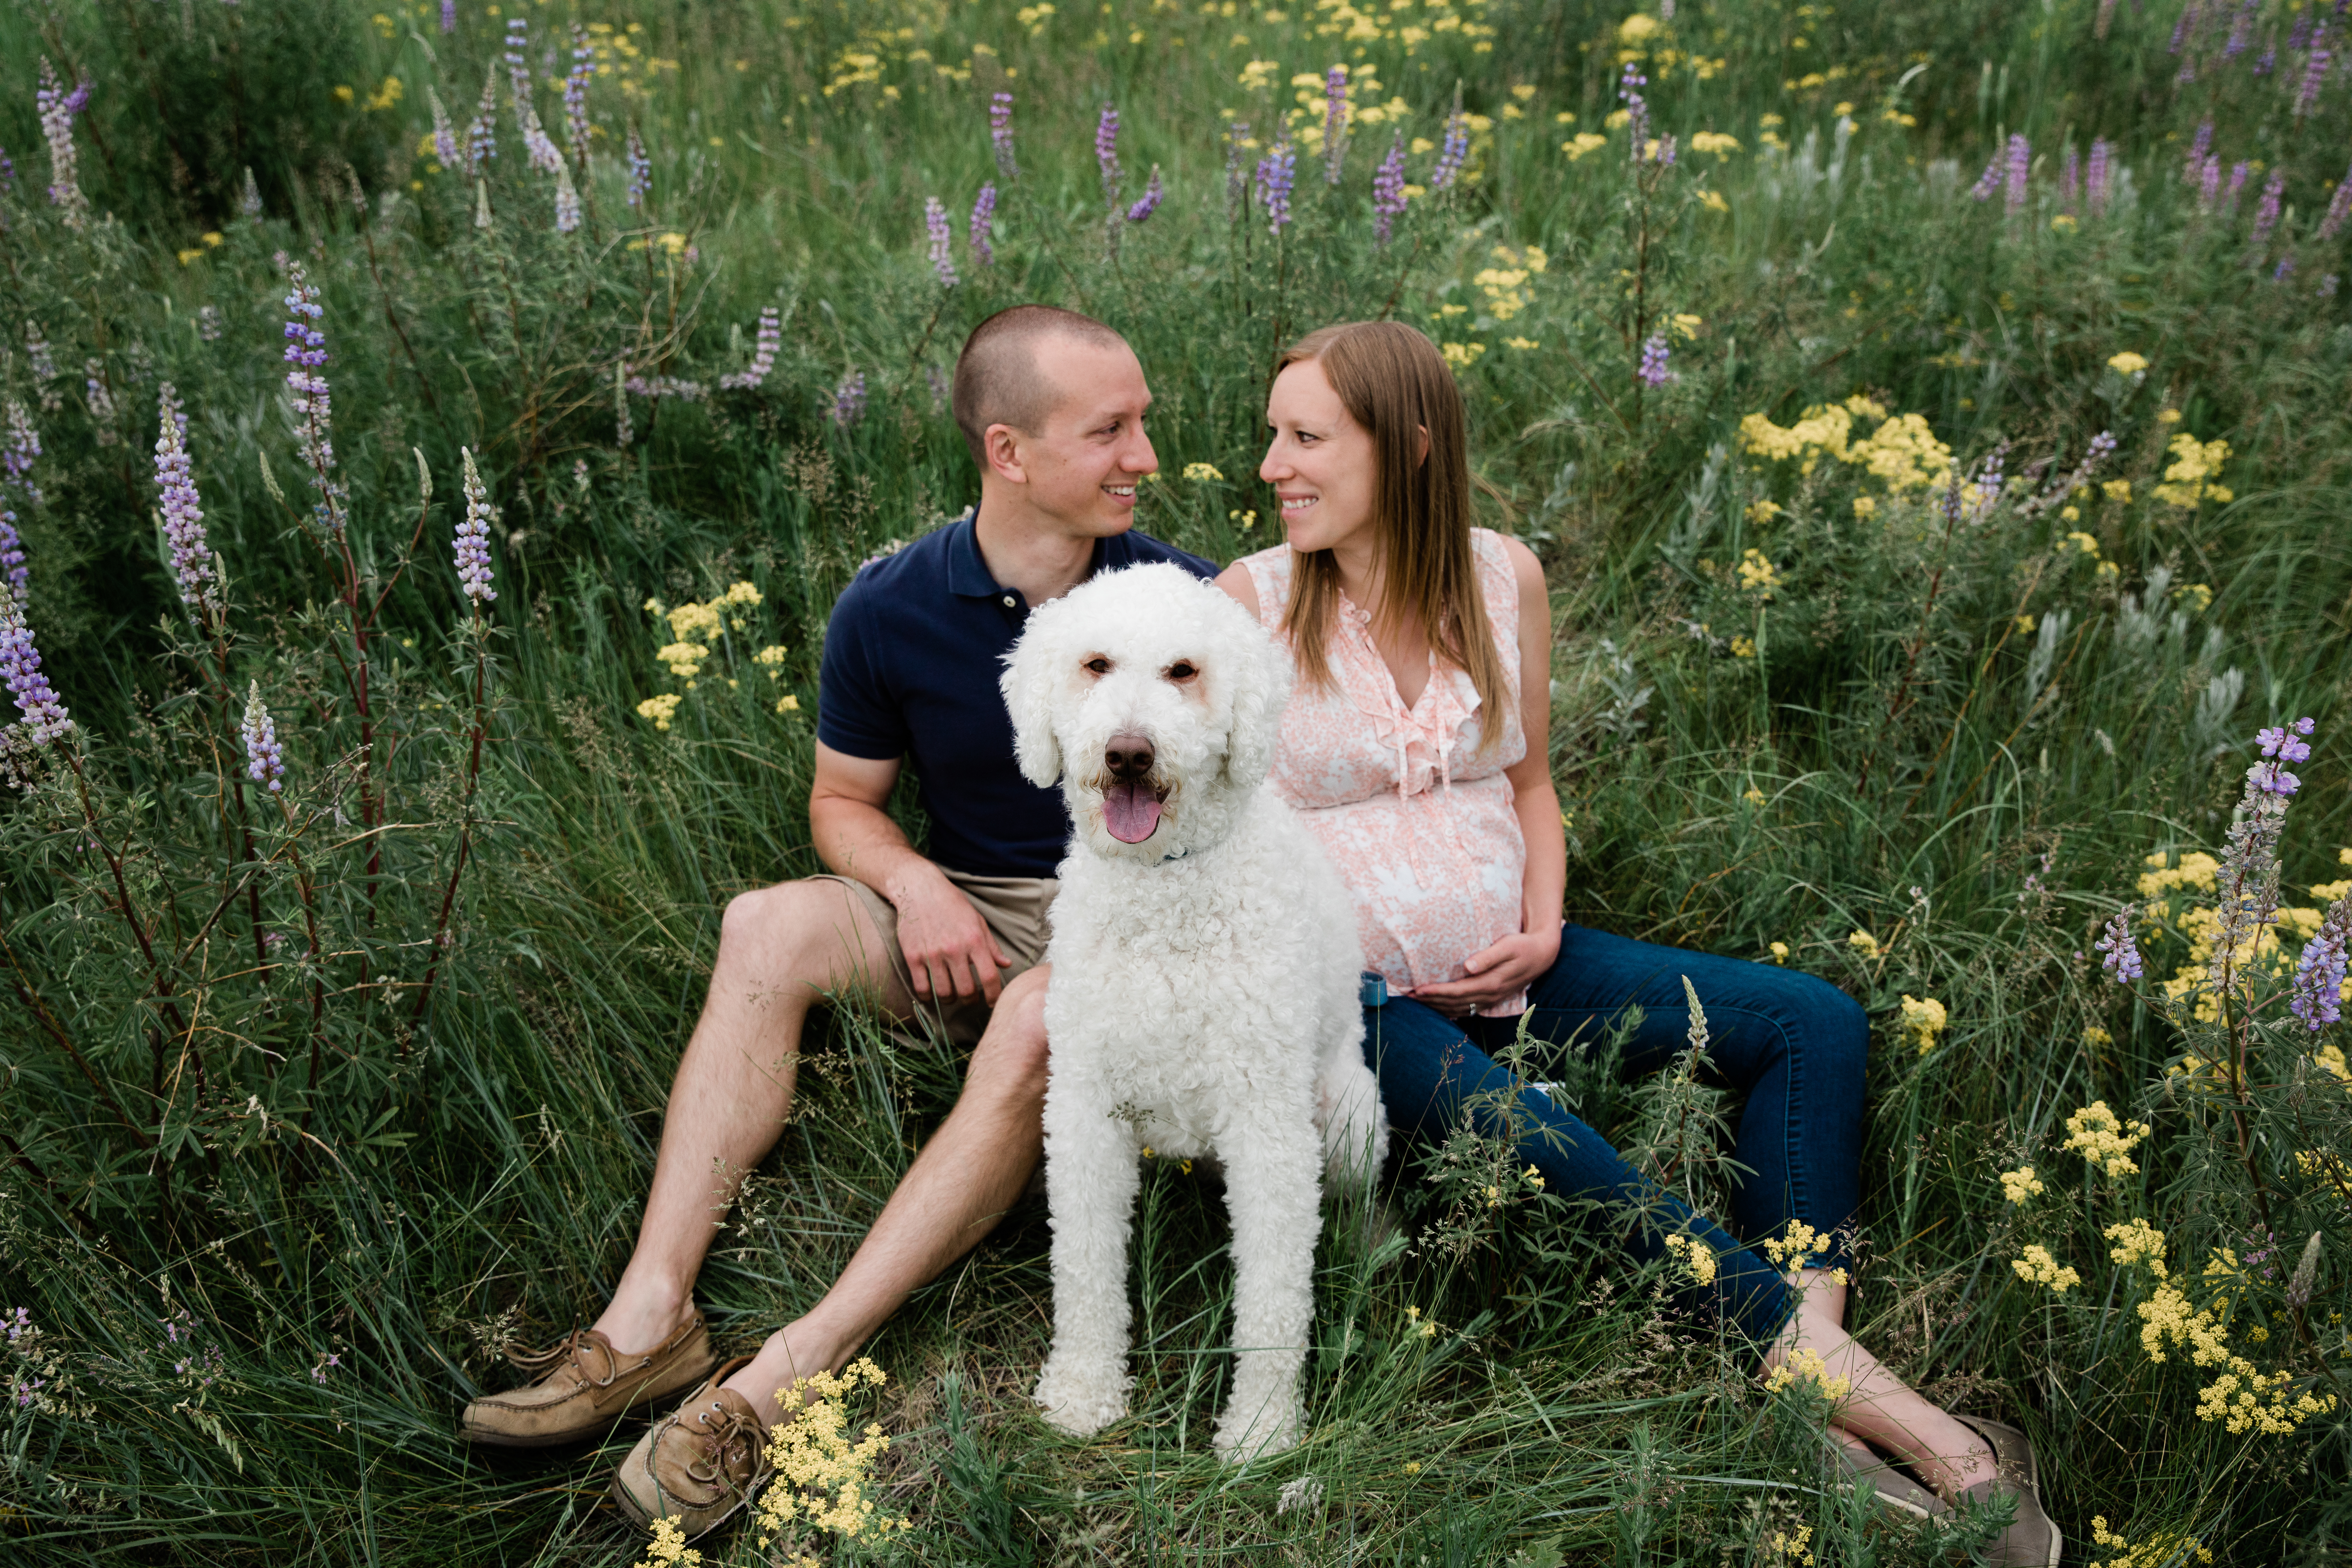 Maternity portraits couple posing during wildflower season in Colorado.